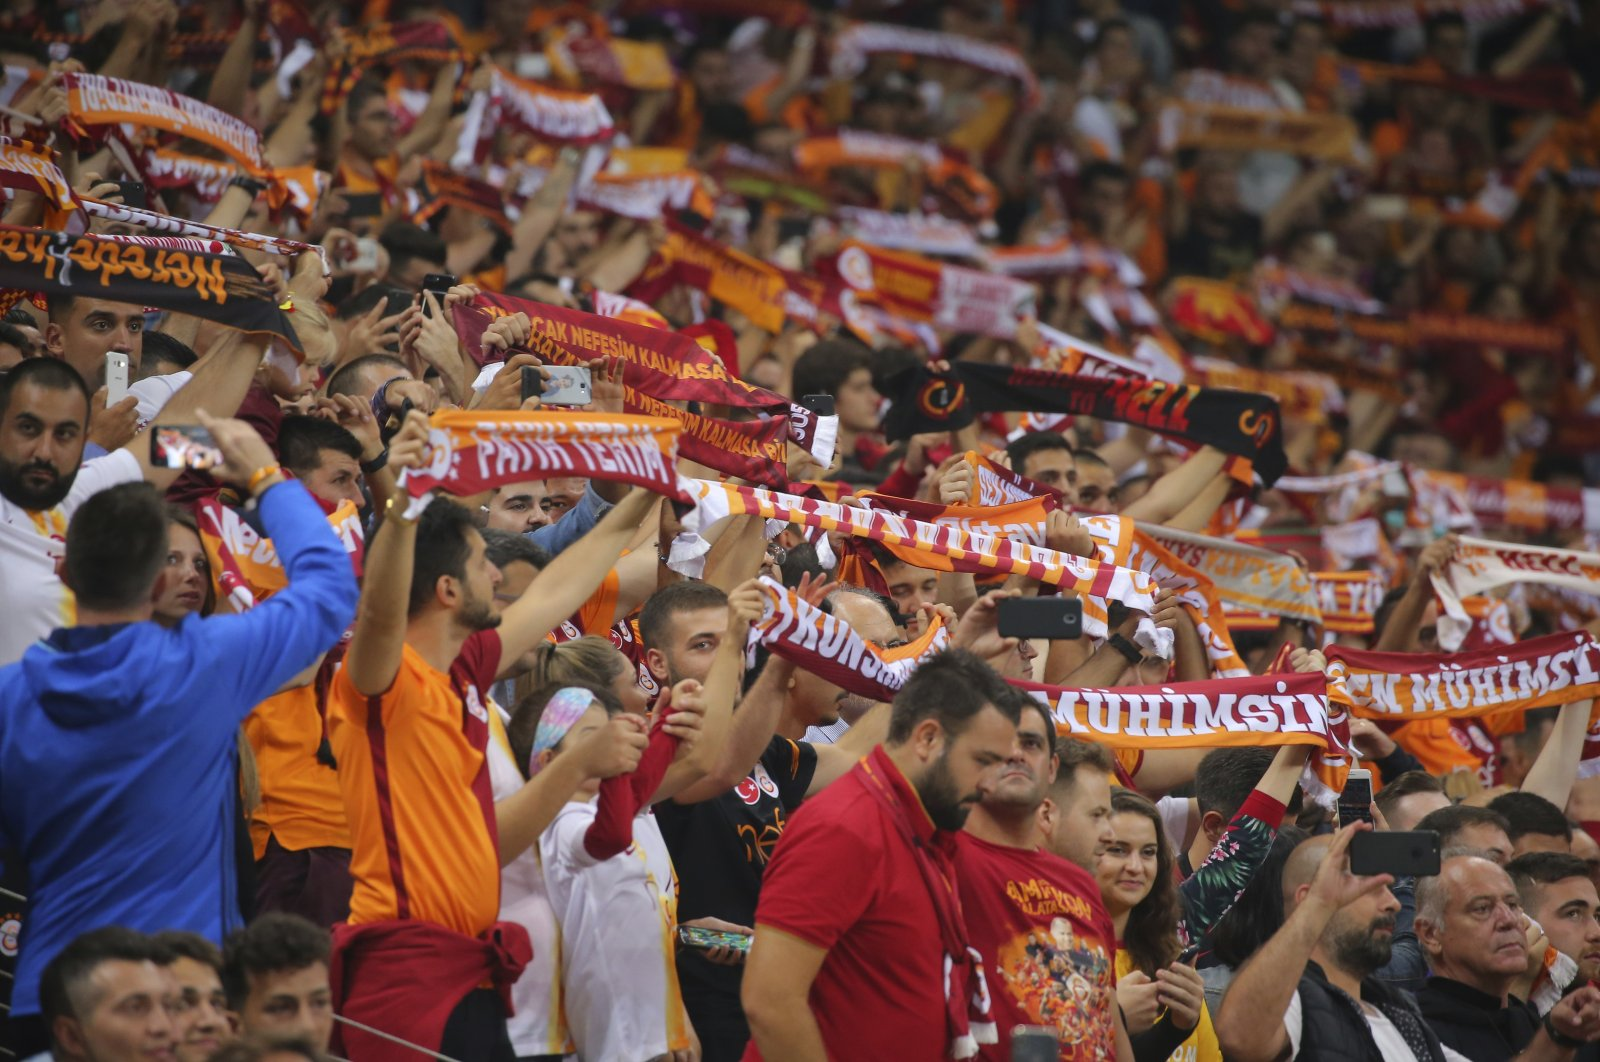 Galatasaray's fans celebrate ahead of the Champions League Group D football match between Galatasaray and Lokomotiv Moscow in Istanbul, Turkey, Sept. 18, 2018. (AP Photo)